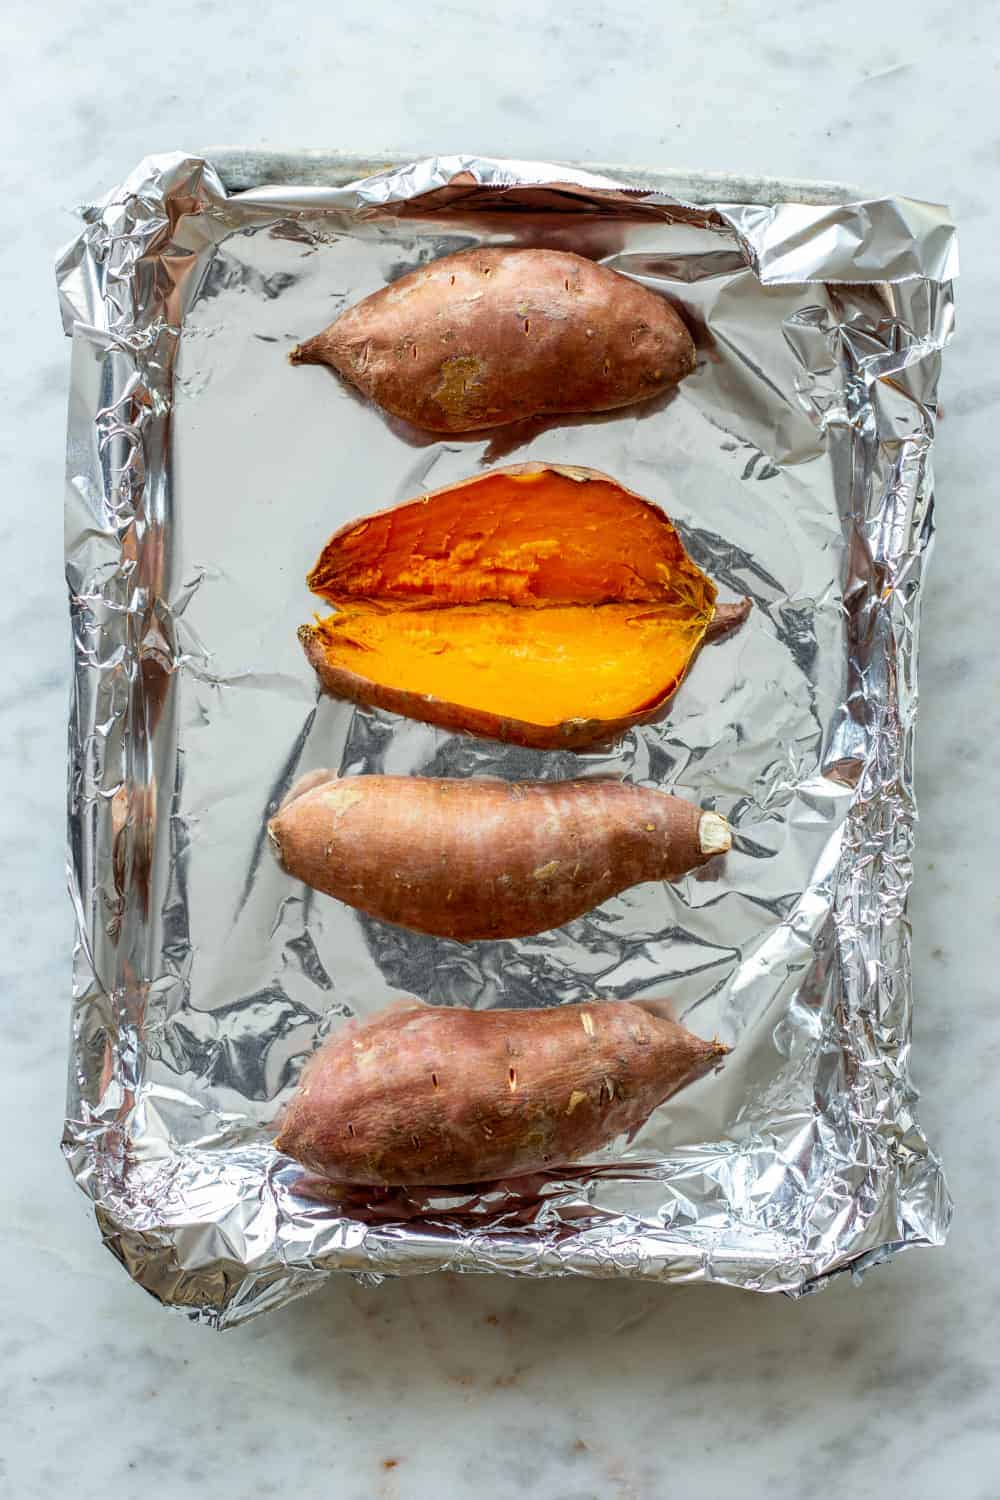 Baked sweet potatoes on a foil-lined sheet tray, with one of the sweet potatoes split open